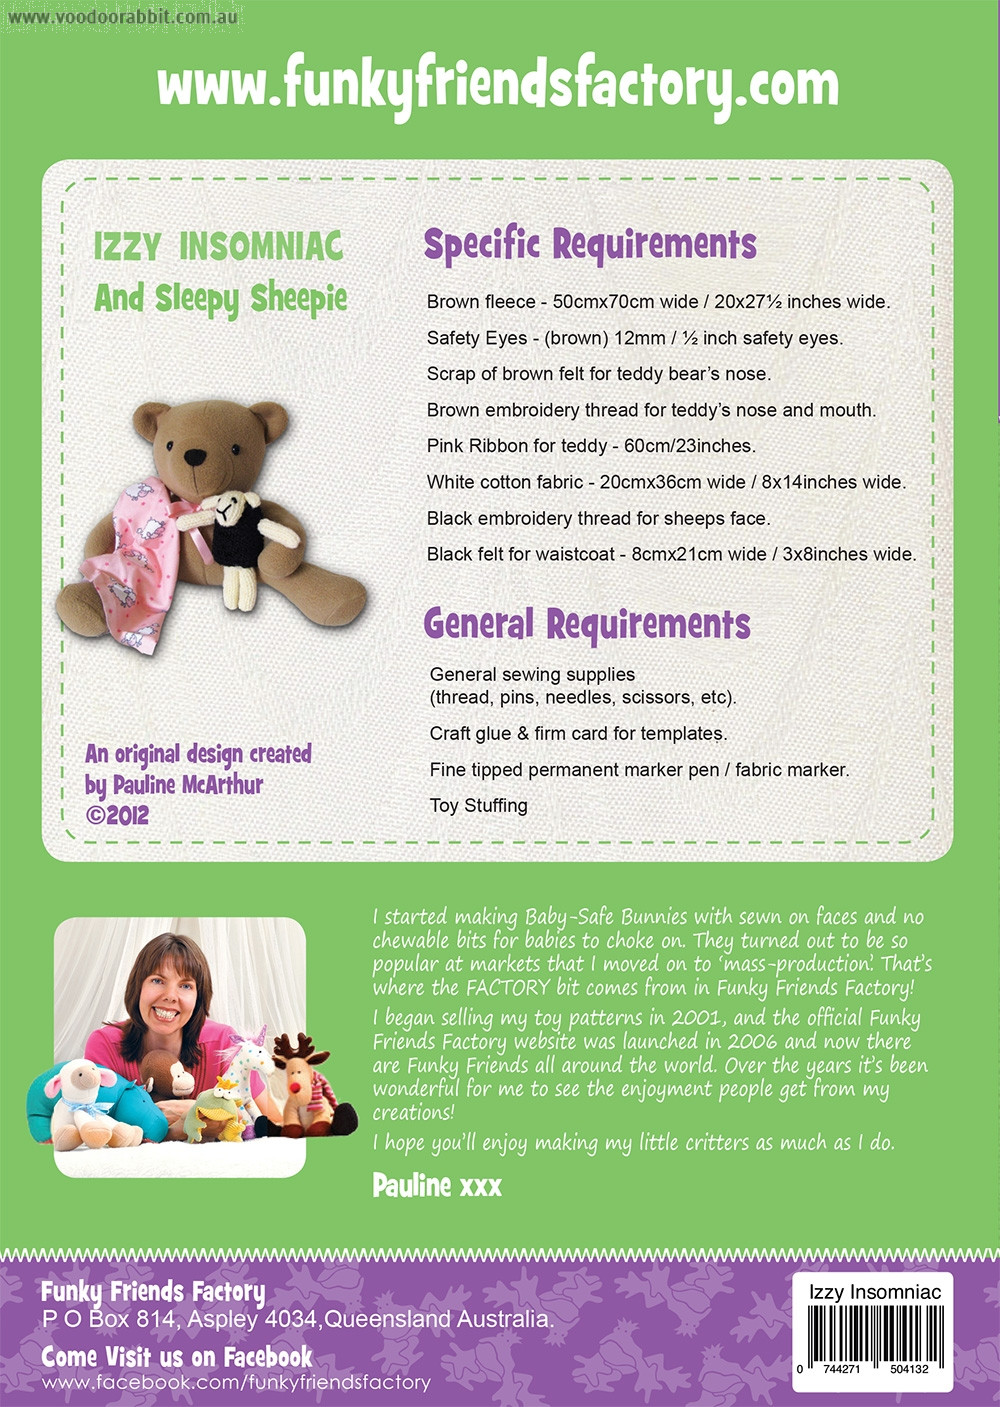 Izzy Insomniac Teddy Bear Soft Toy Sewing Pattern by Funky Friends Factory